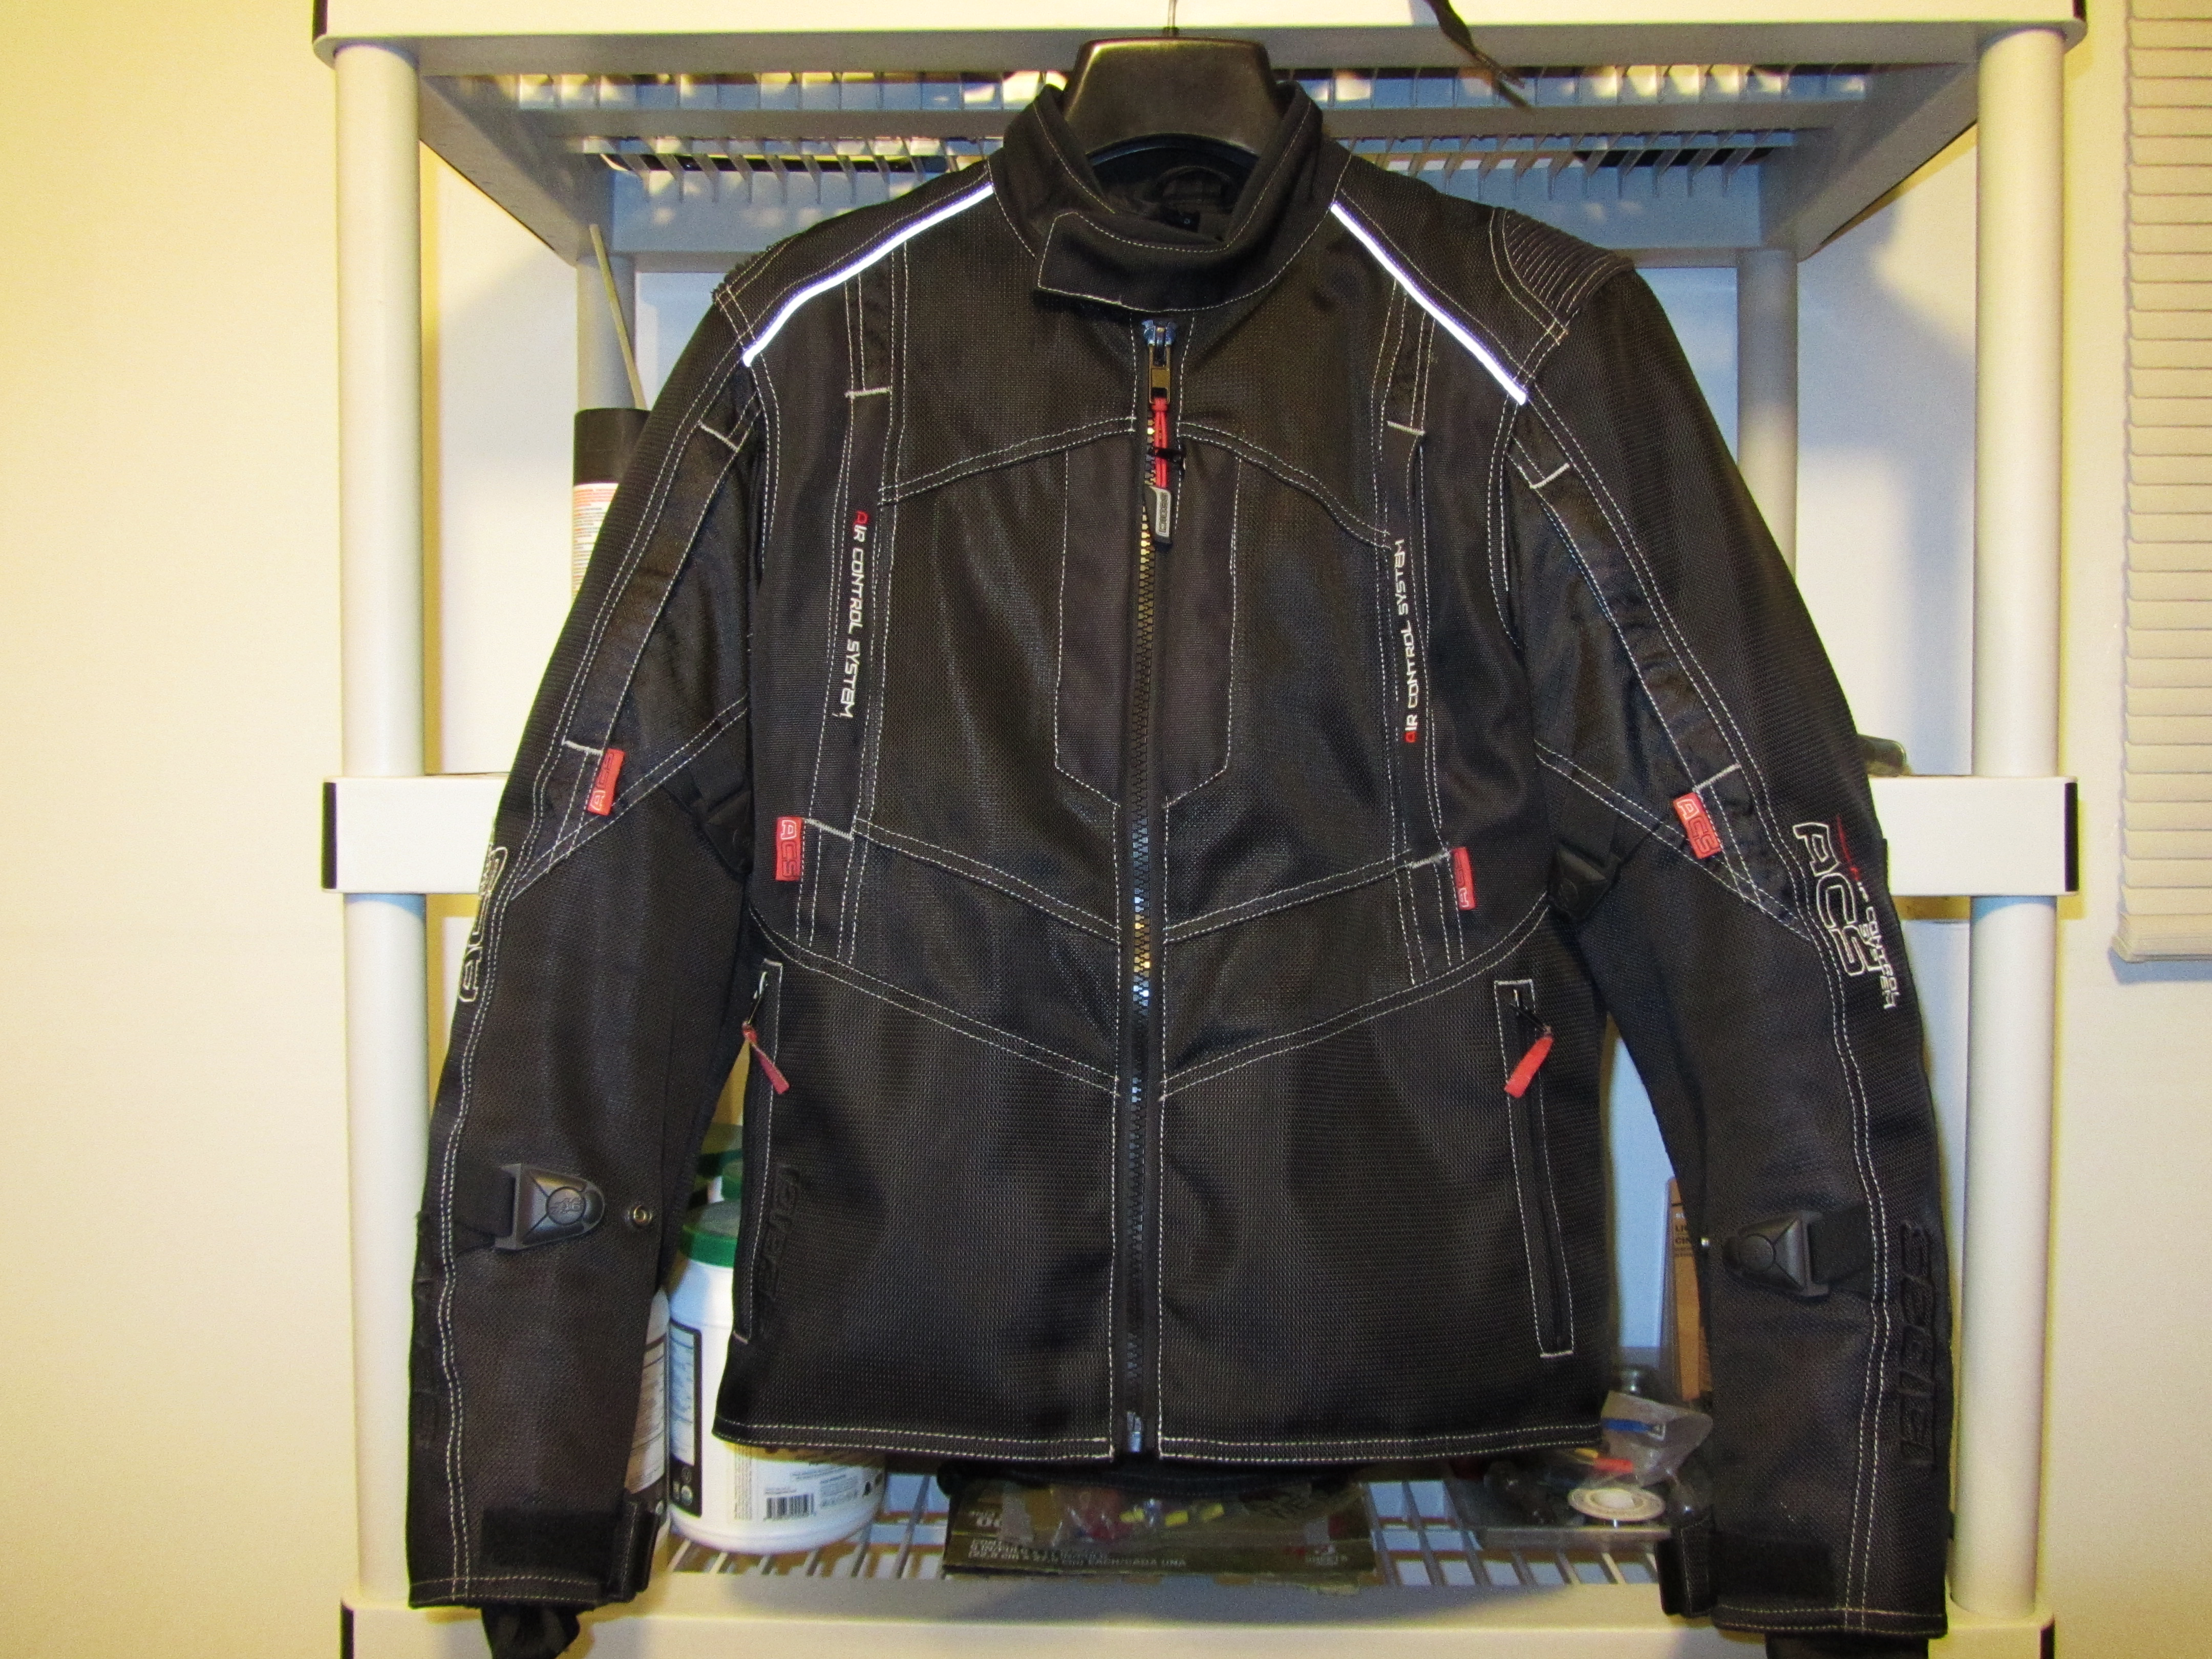 c76297c7c Affordable, Armored, Waterproof Textile Riding Suits